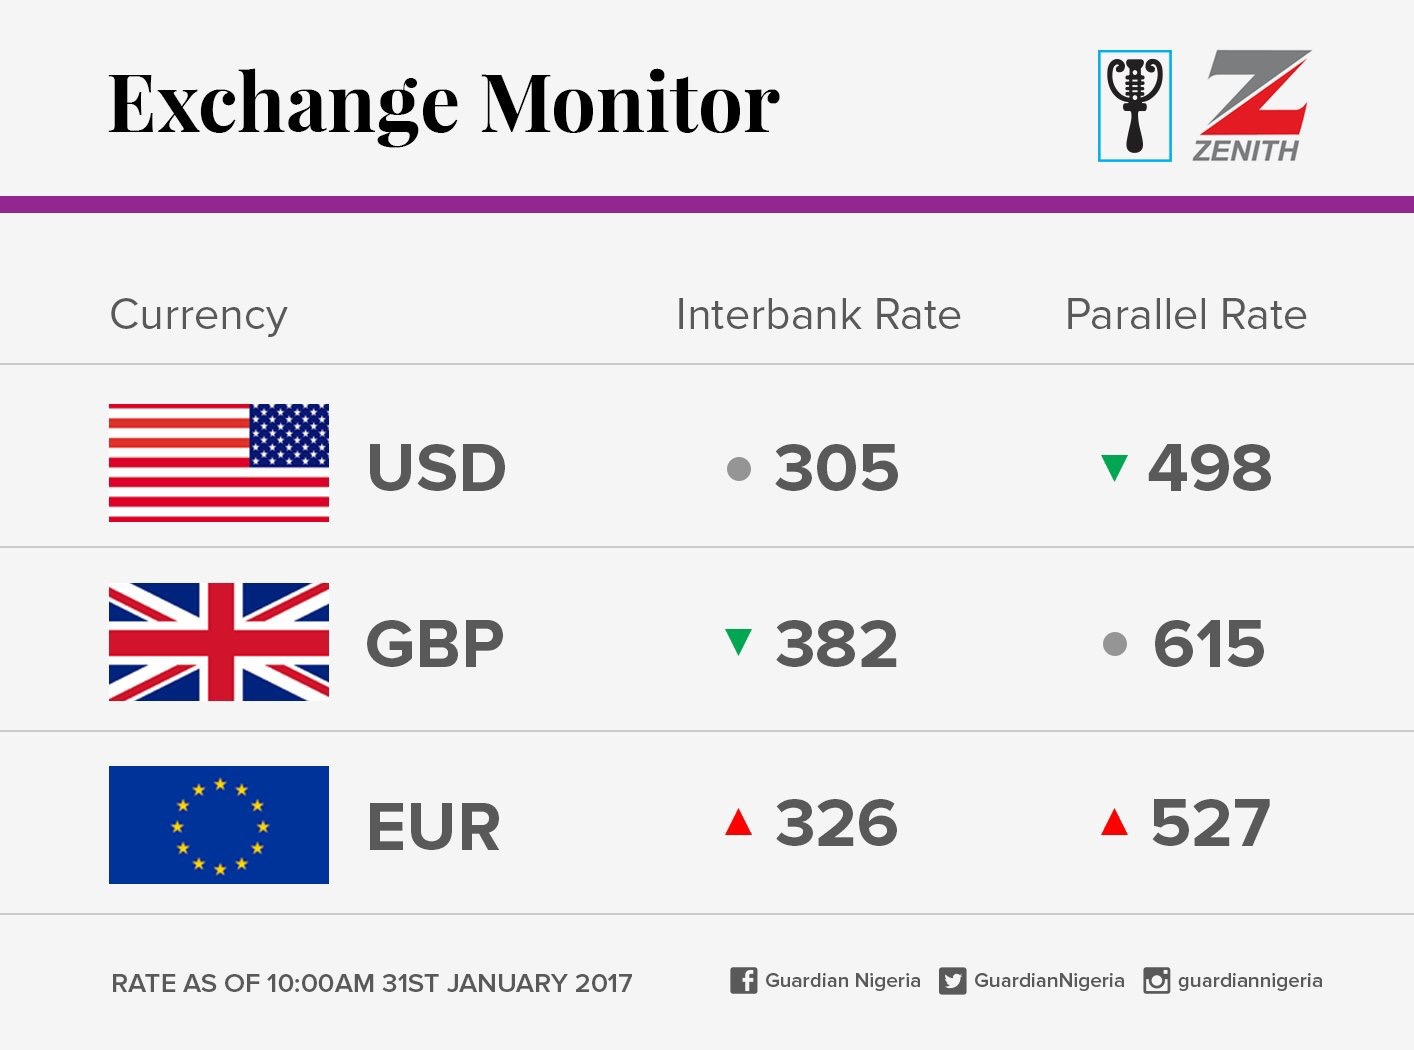 Exchange Rate For 31st January 2017